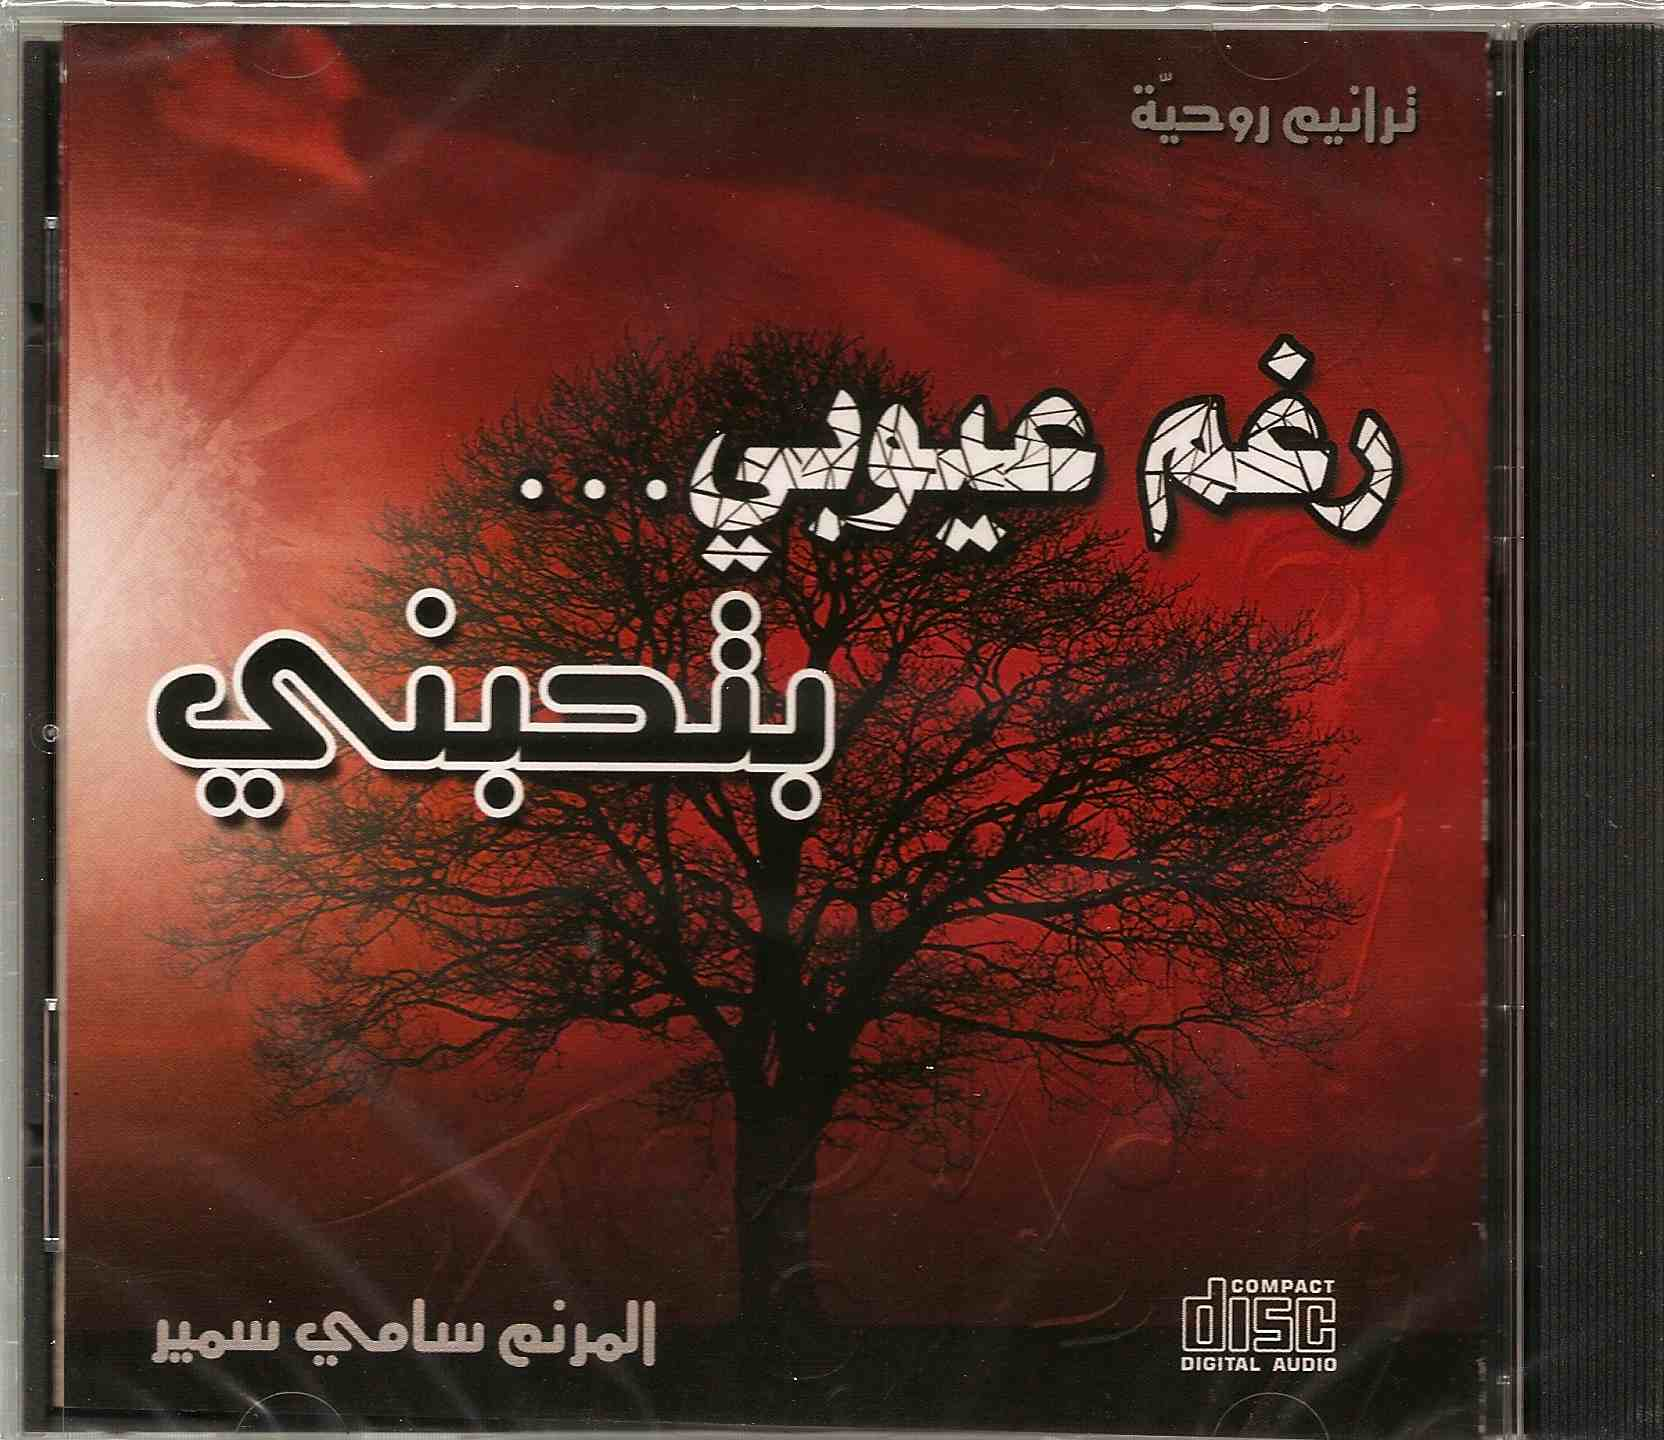 Even with my errors... You still love me cd by Sami Samir